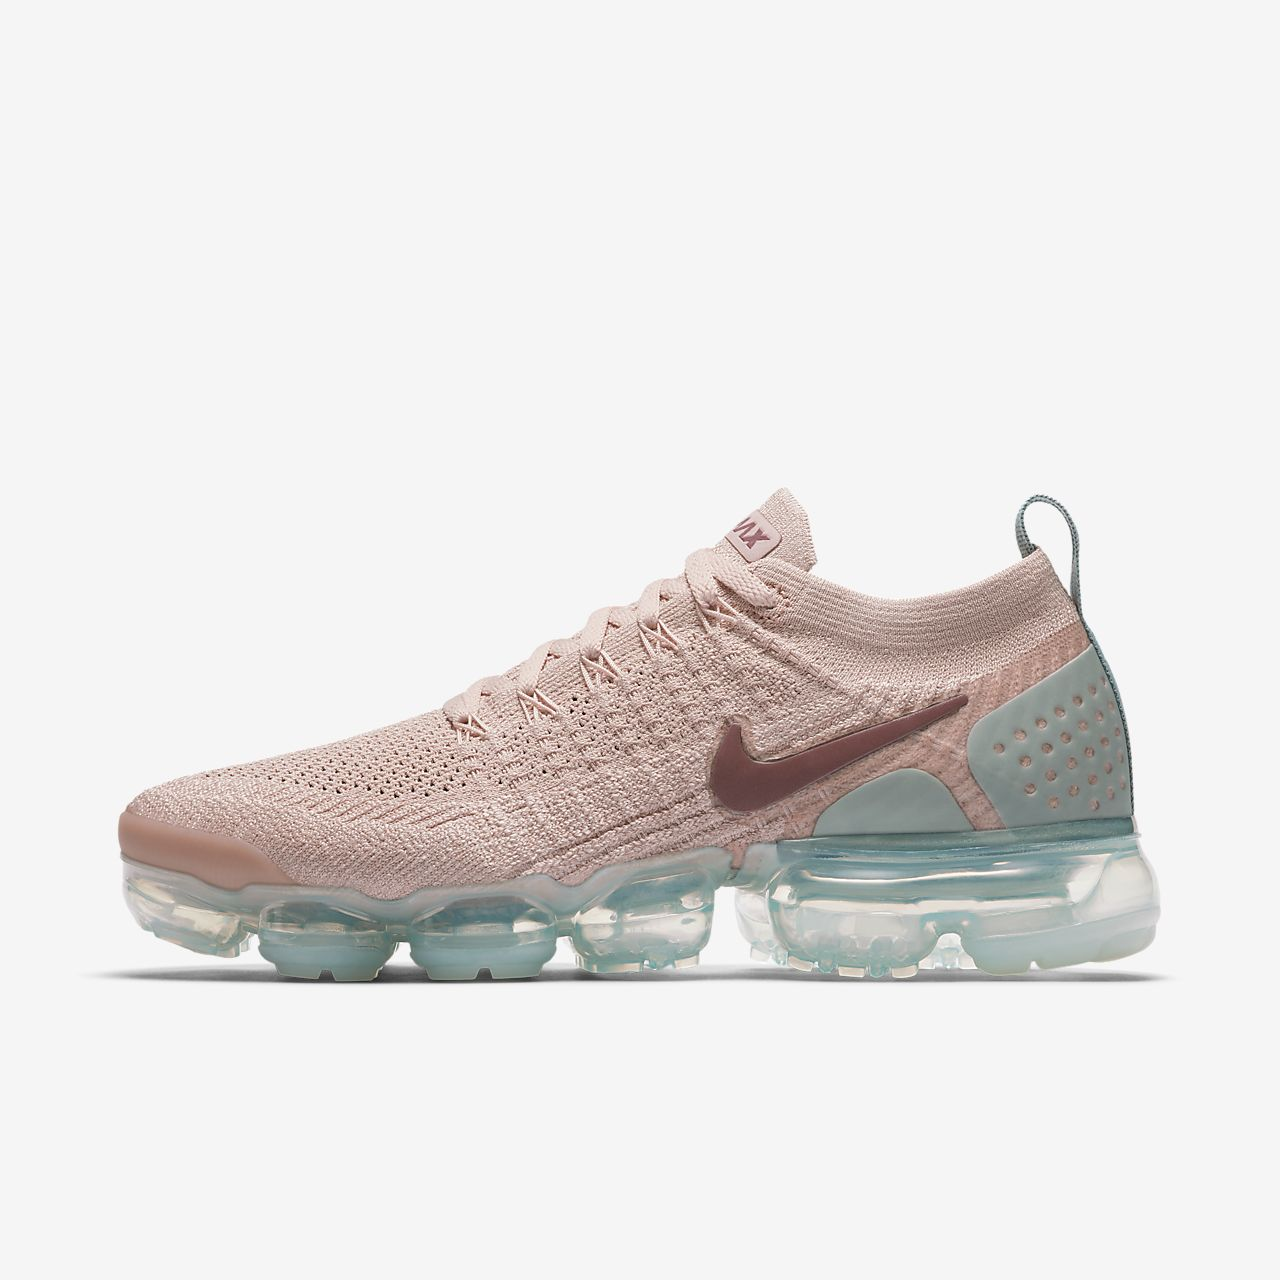 low priced 2af6a 16719 low price purple red womens nike vapormax shoes 9cdf7 45708